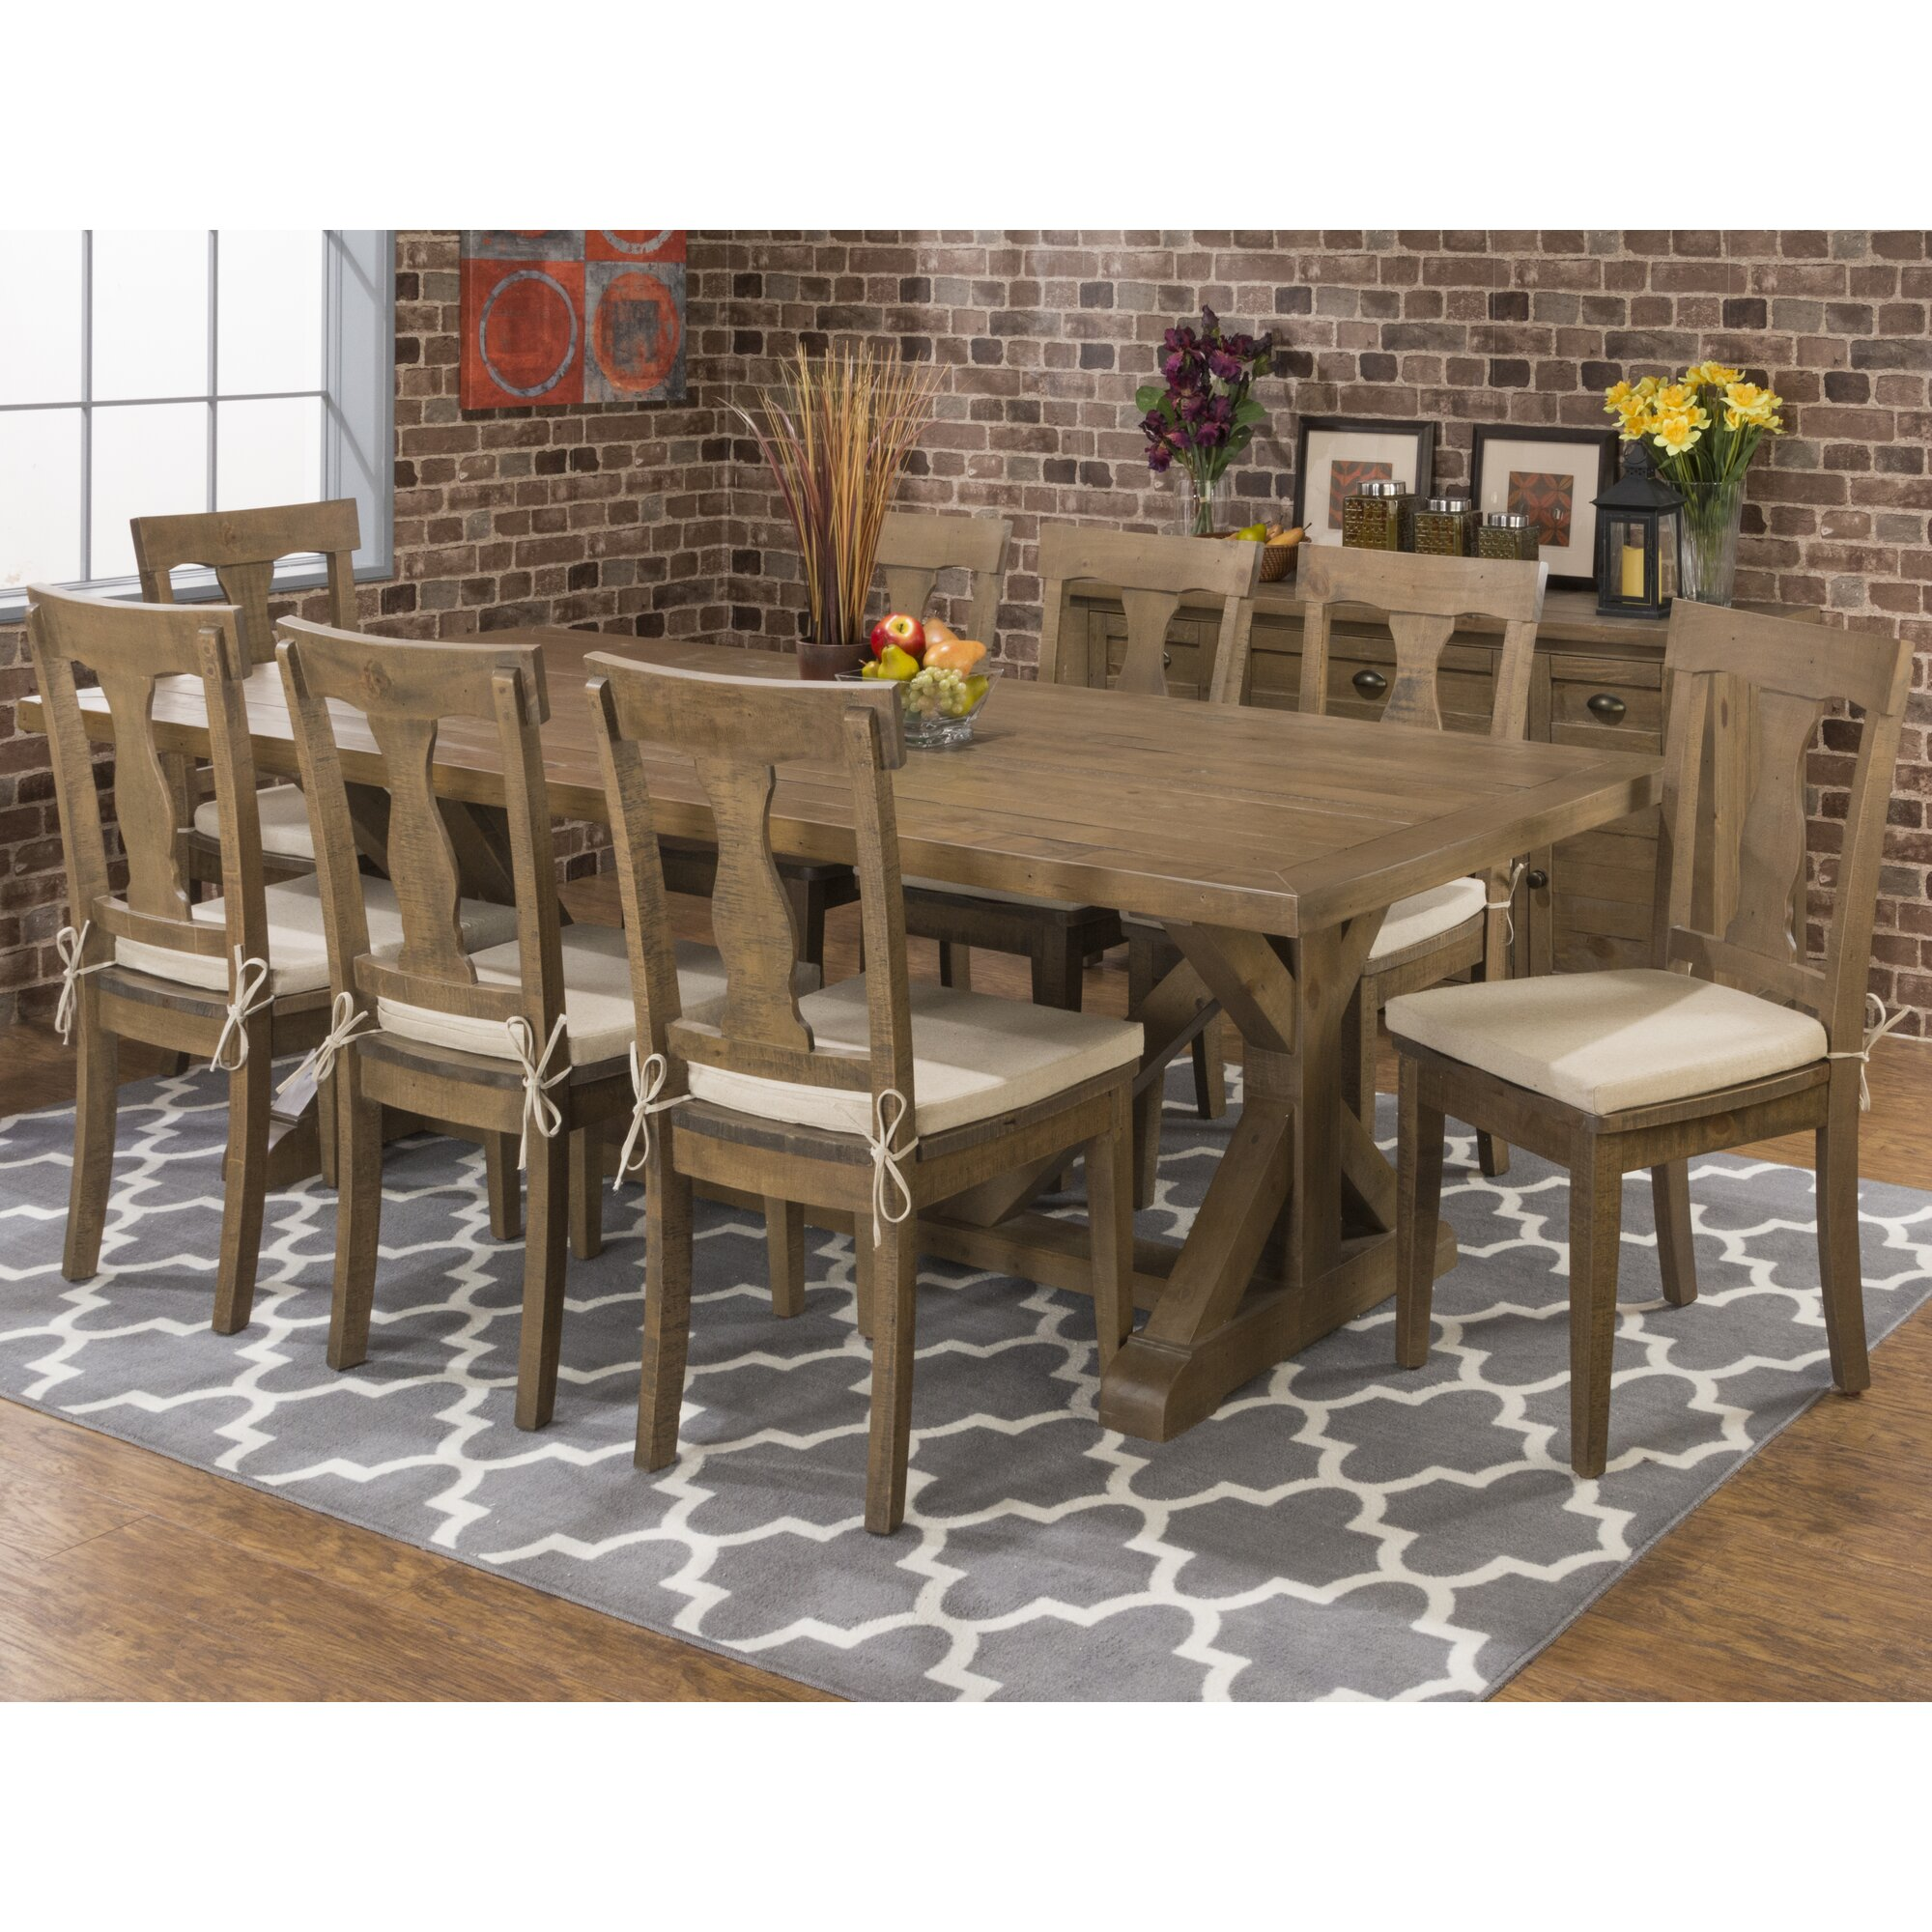 Chic 12 Seater Dining Table Dimensions modest ideas dining room table sizes bright inspiration dining table size Cannes Dining Table